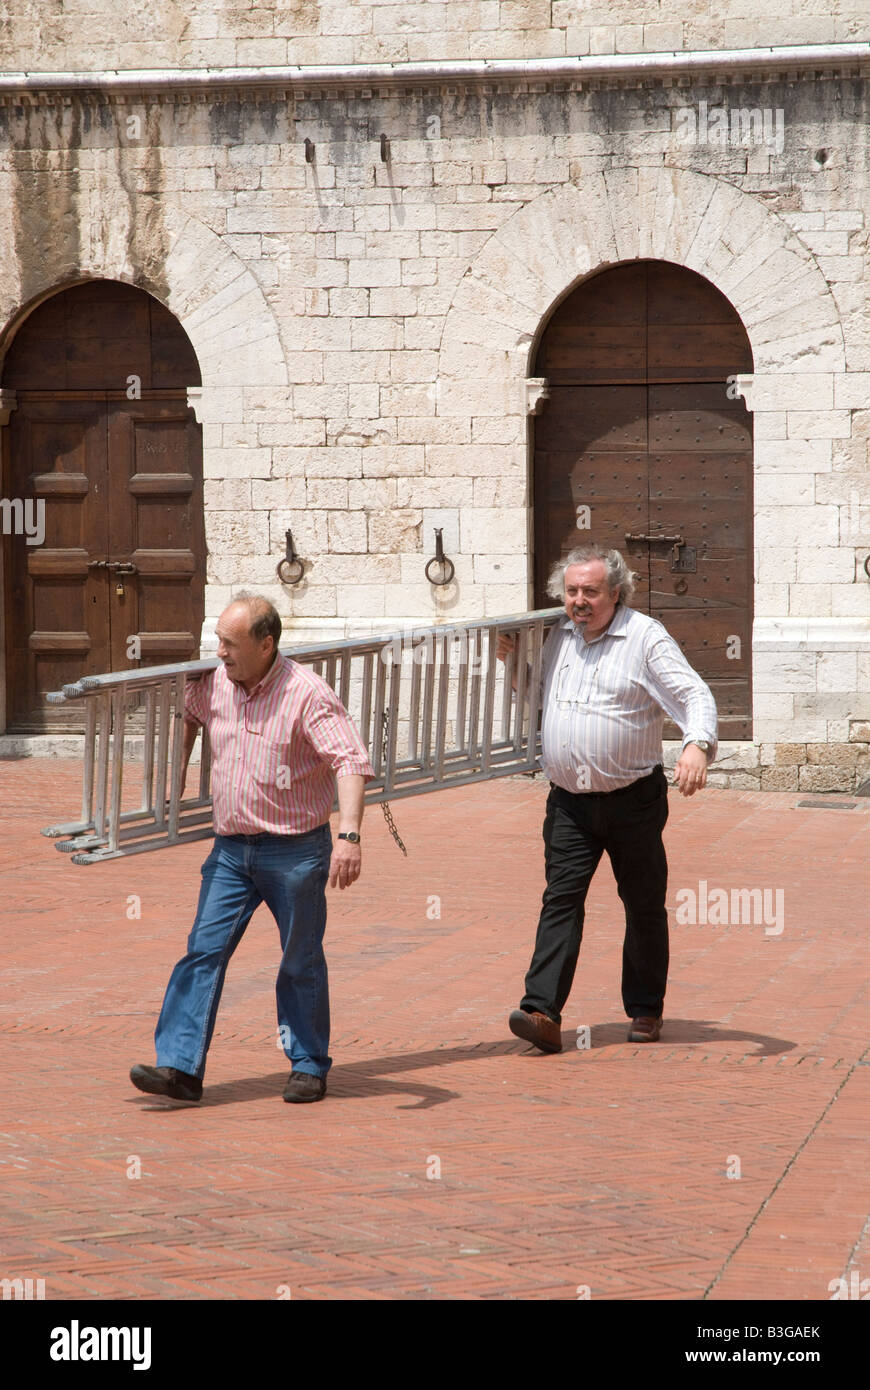 two men carrying a ladder - Stock Image